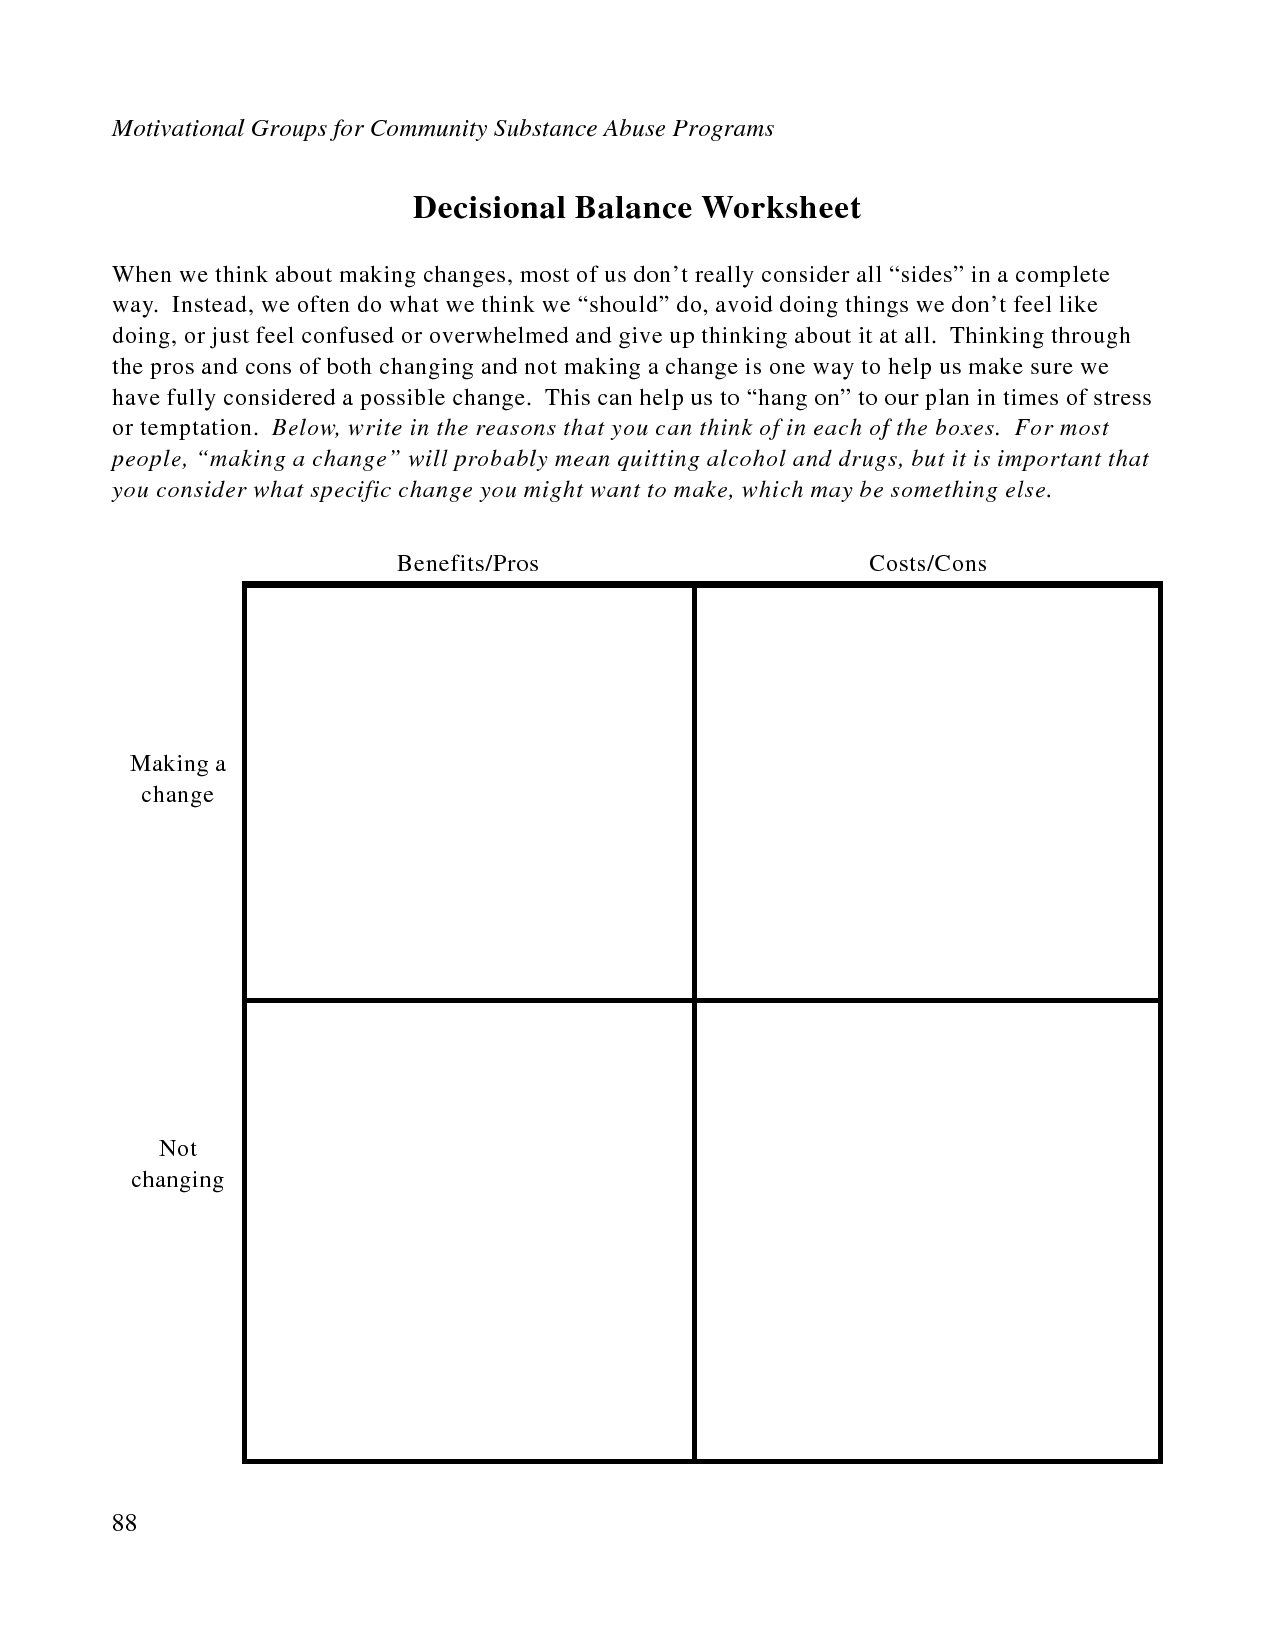 Free Printable Dbt Worksheets | Decisional Balance Worksheet - Pdf | Free Printable Therapy Worksheets